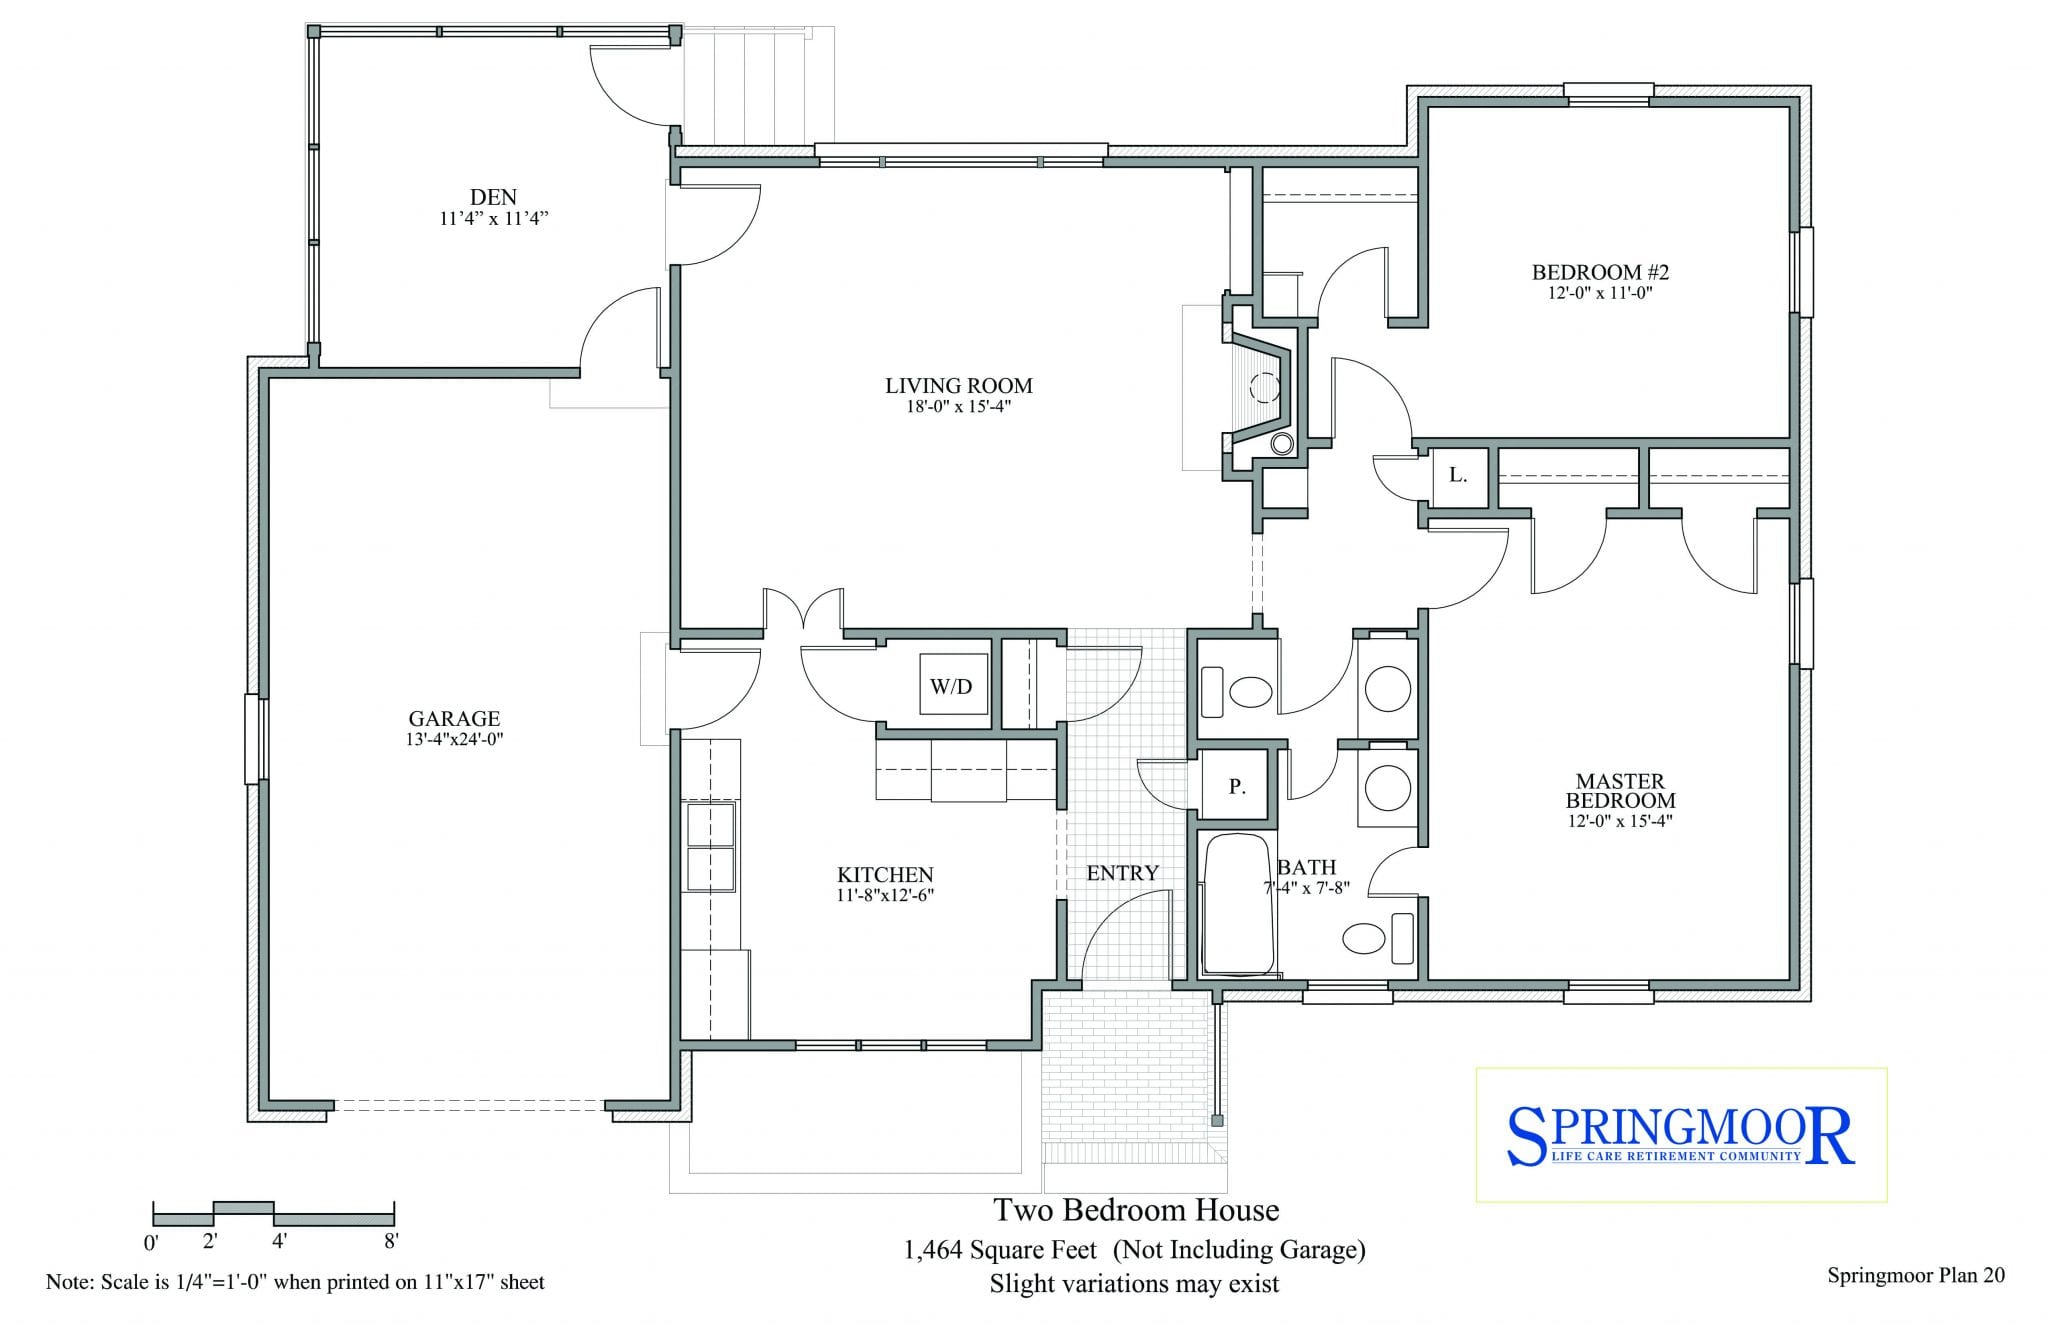 Floor Plan Options for our Houses - Springmoor